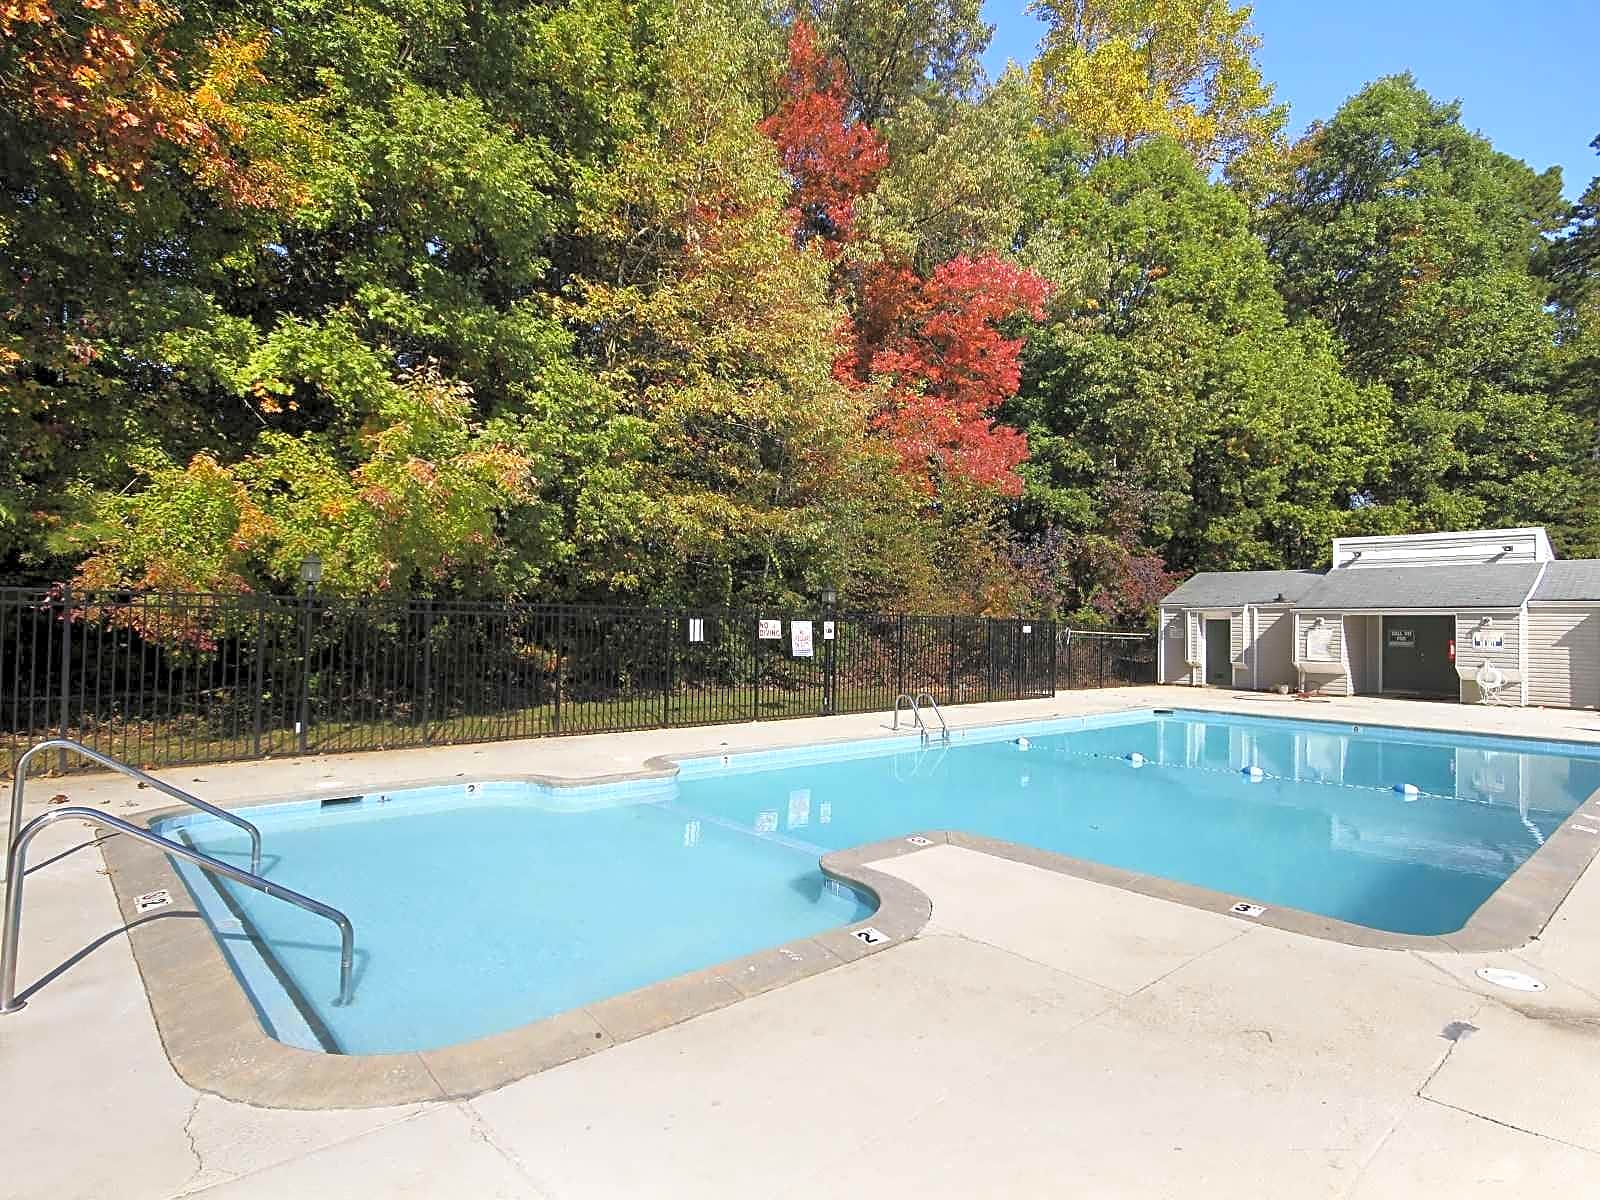 Photo: Greensboro Apartment for Rent - $750.00 / month; 3 Bd & 2 Ba